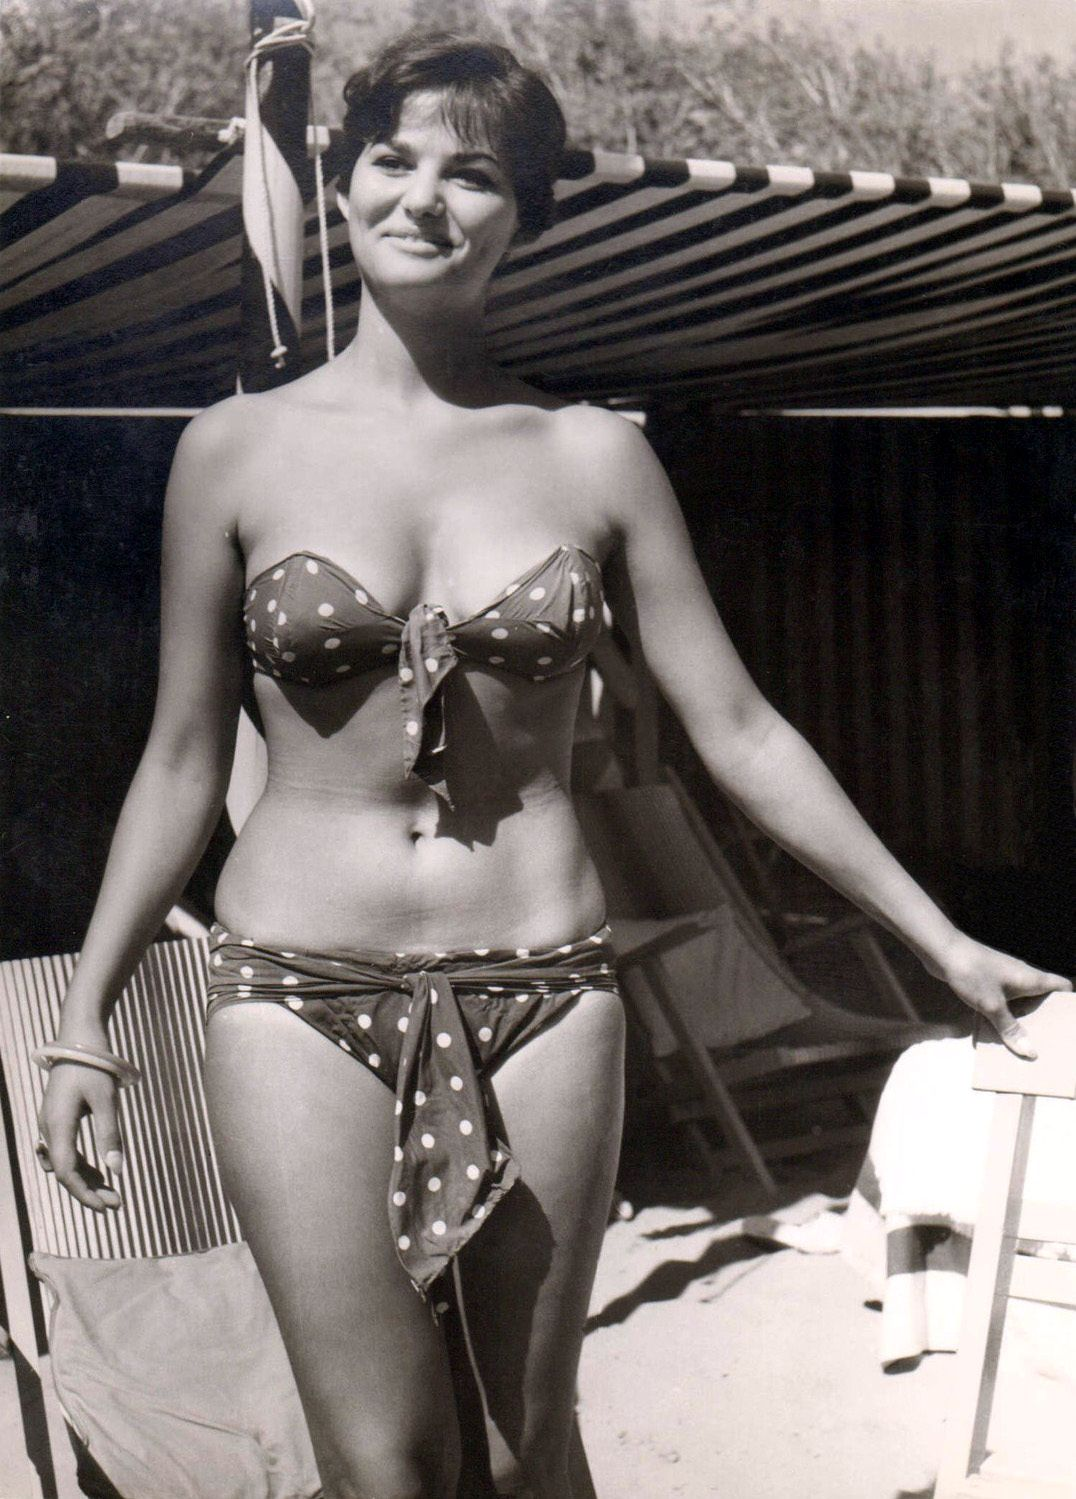 Air brushing...how can you improve on perfection anyway? Claudia-cardinale-bikini-les-petroleuses-tumblr